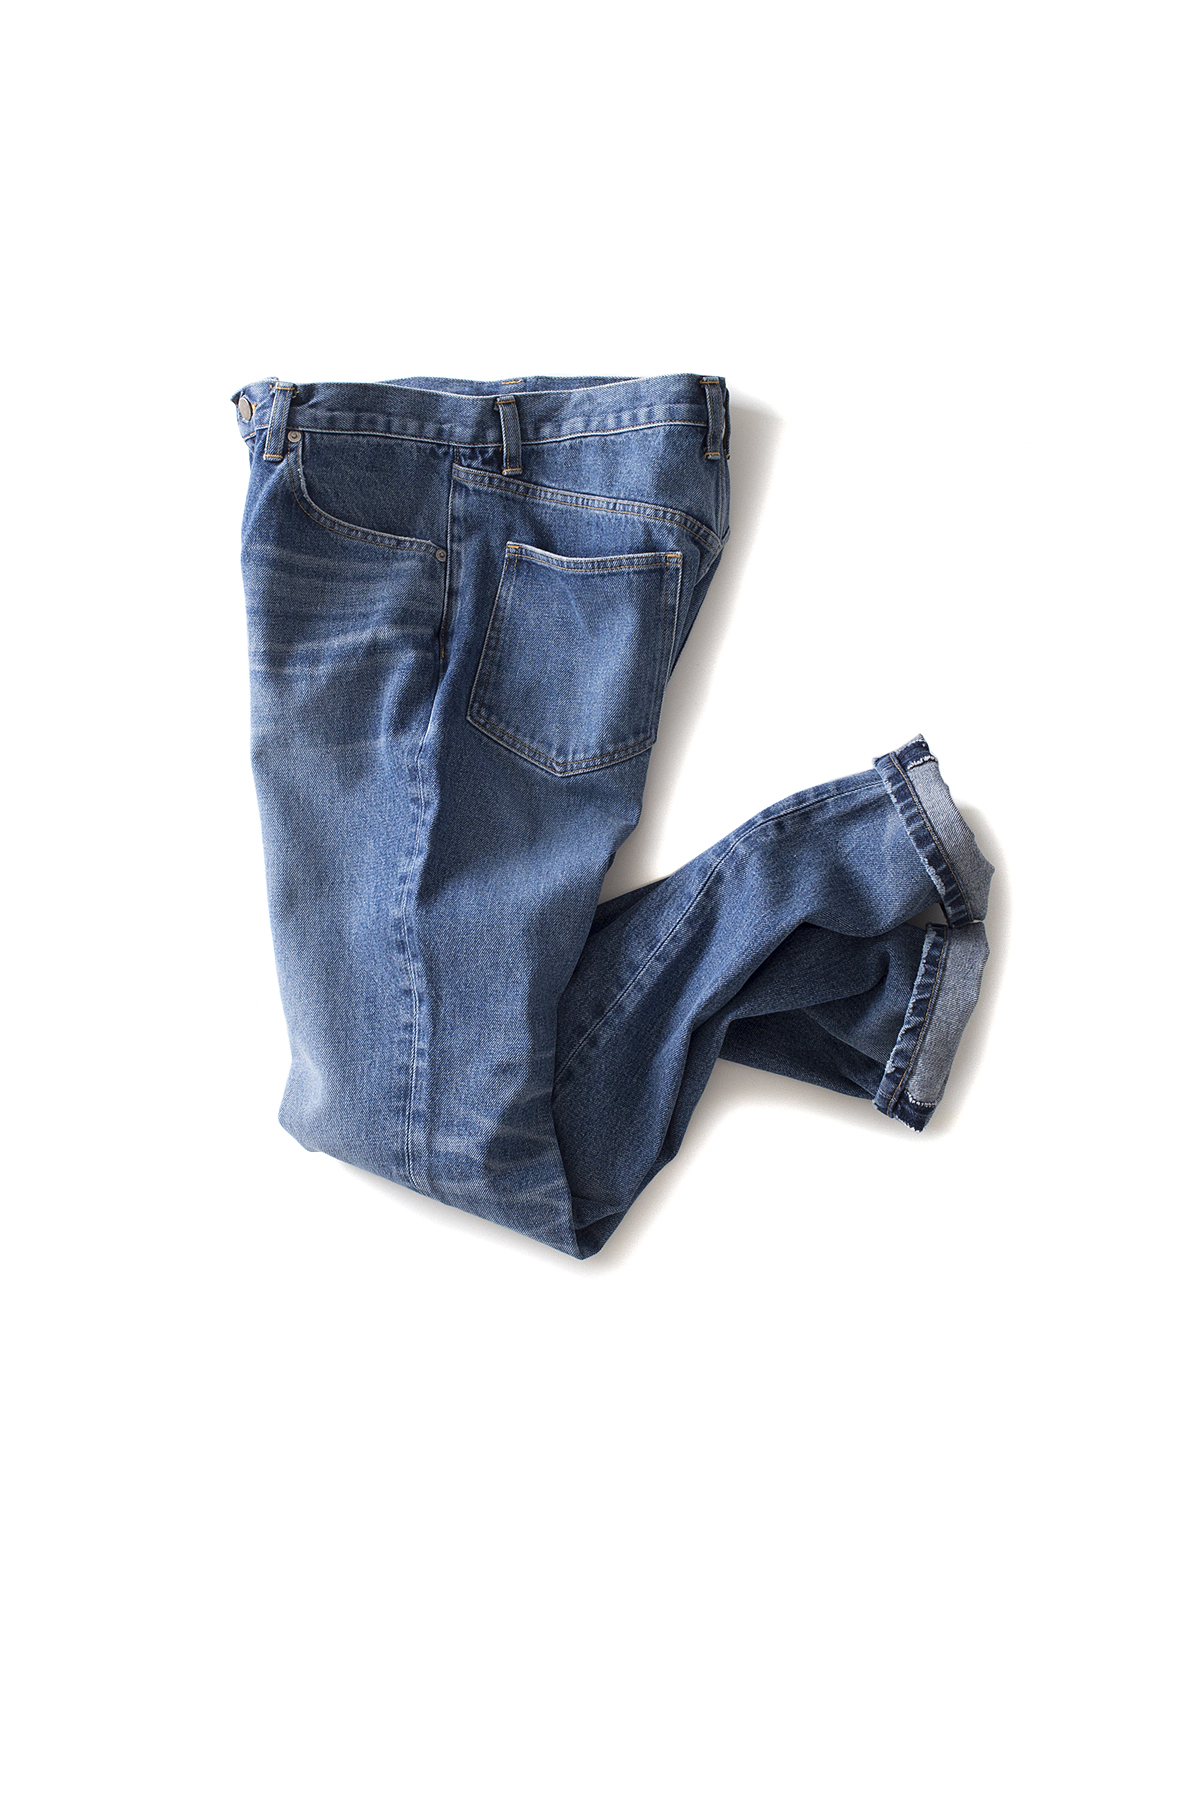 JOHN LAWRENCE SULLIVAN : Washed Straight Jeans (Indigo)